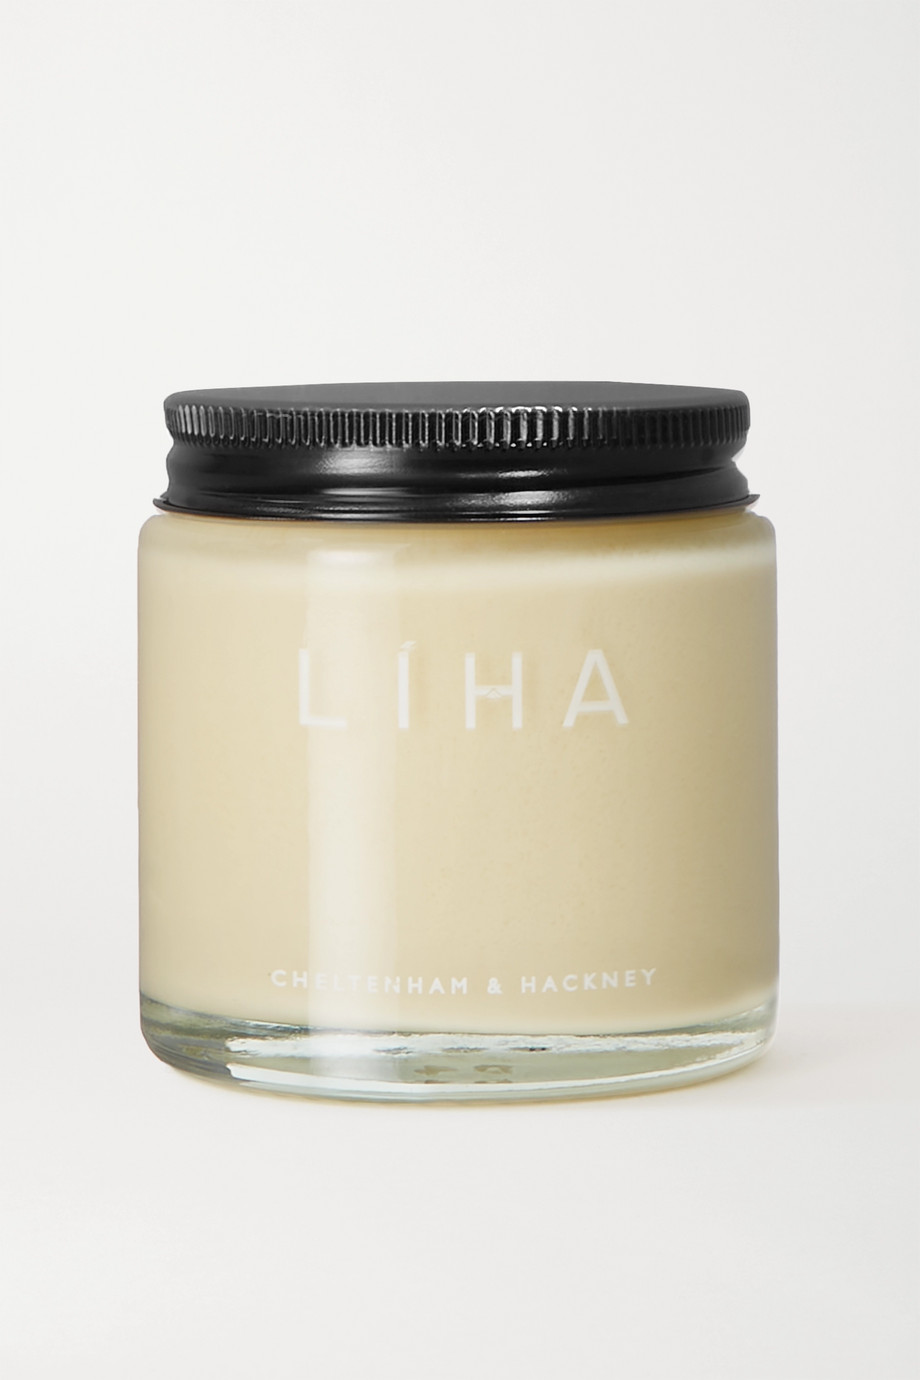 LIHA Ivory Shea Butter, 120ml